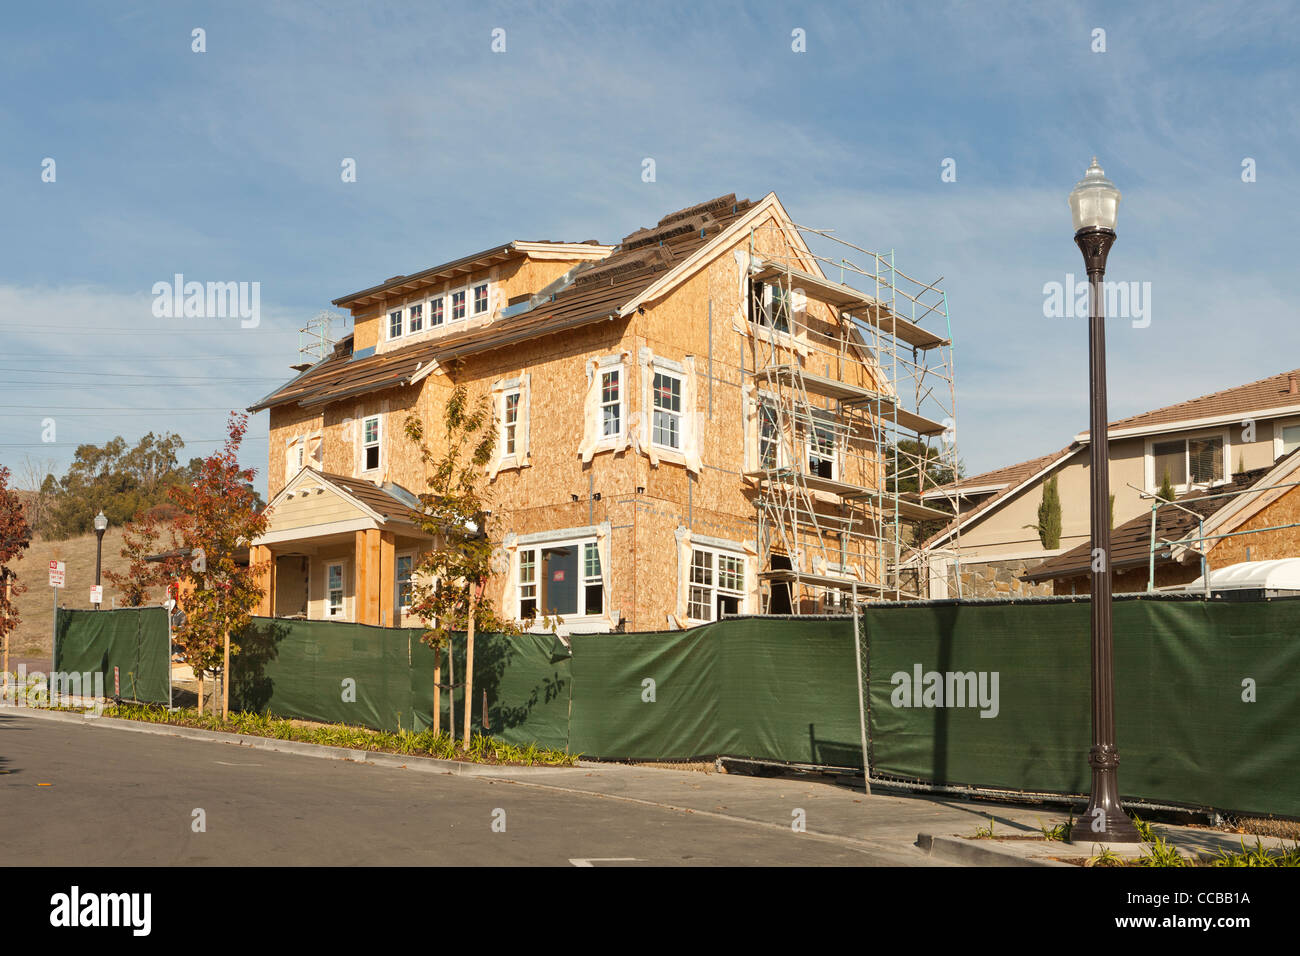 A multistory family home under construction - Stock Image